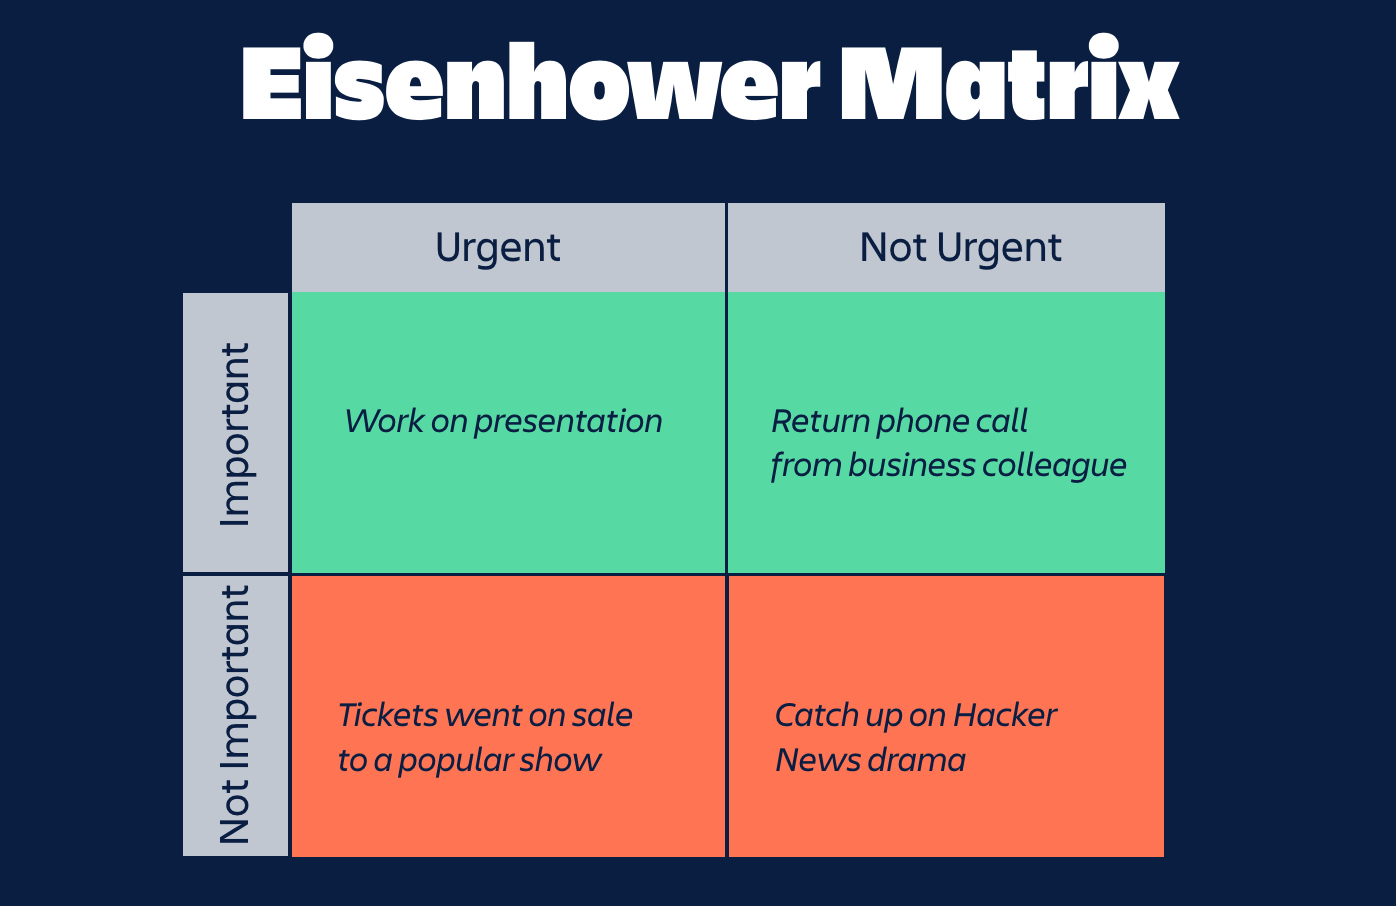 eisehower matrix 2